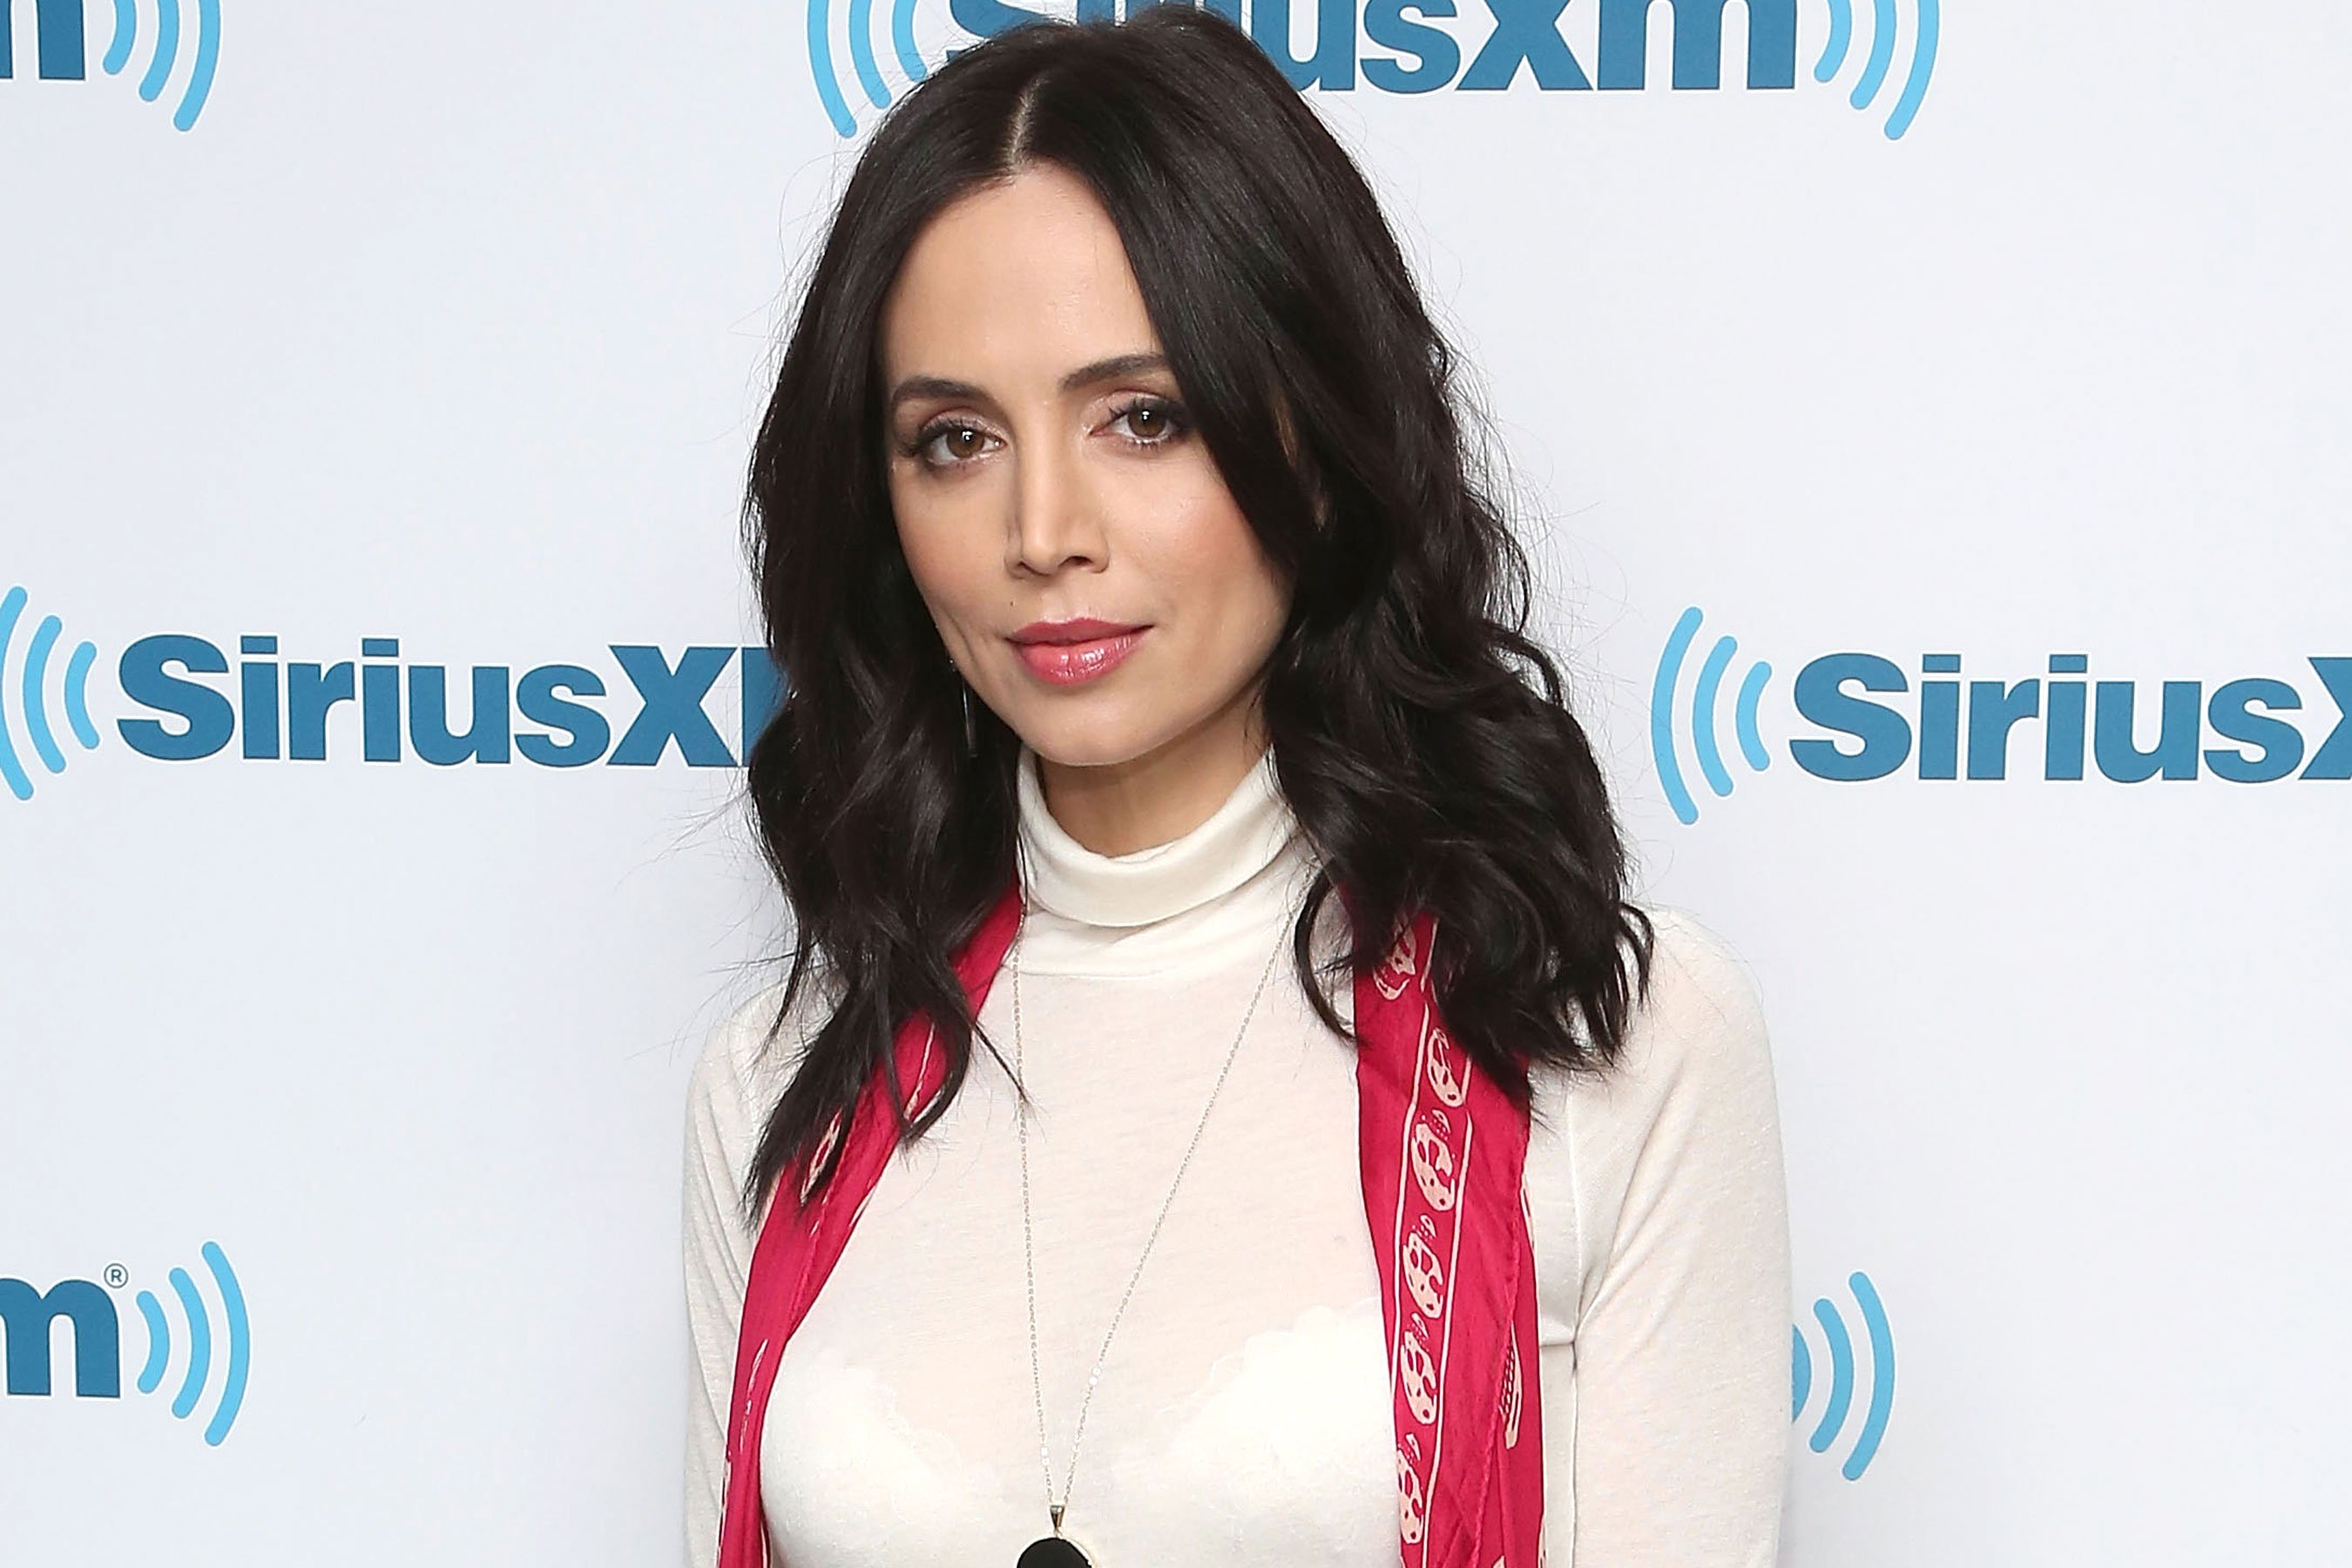 Eliza Dushku alleges True Lies stuntman molested her when she was 12